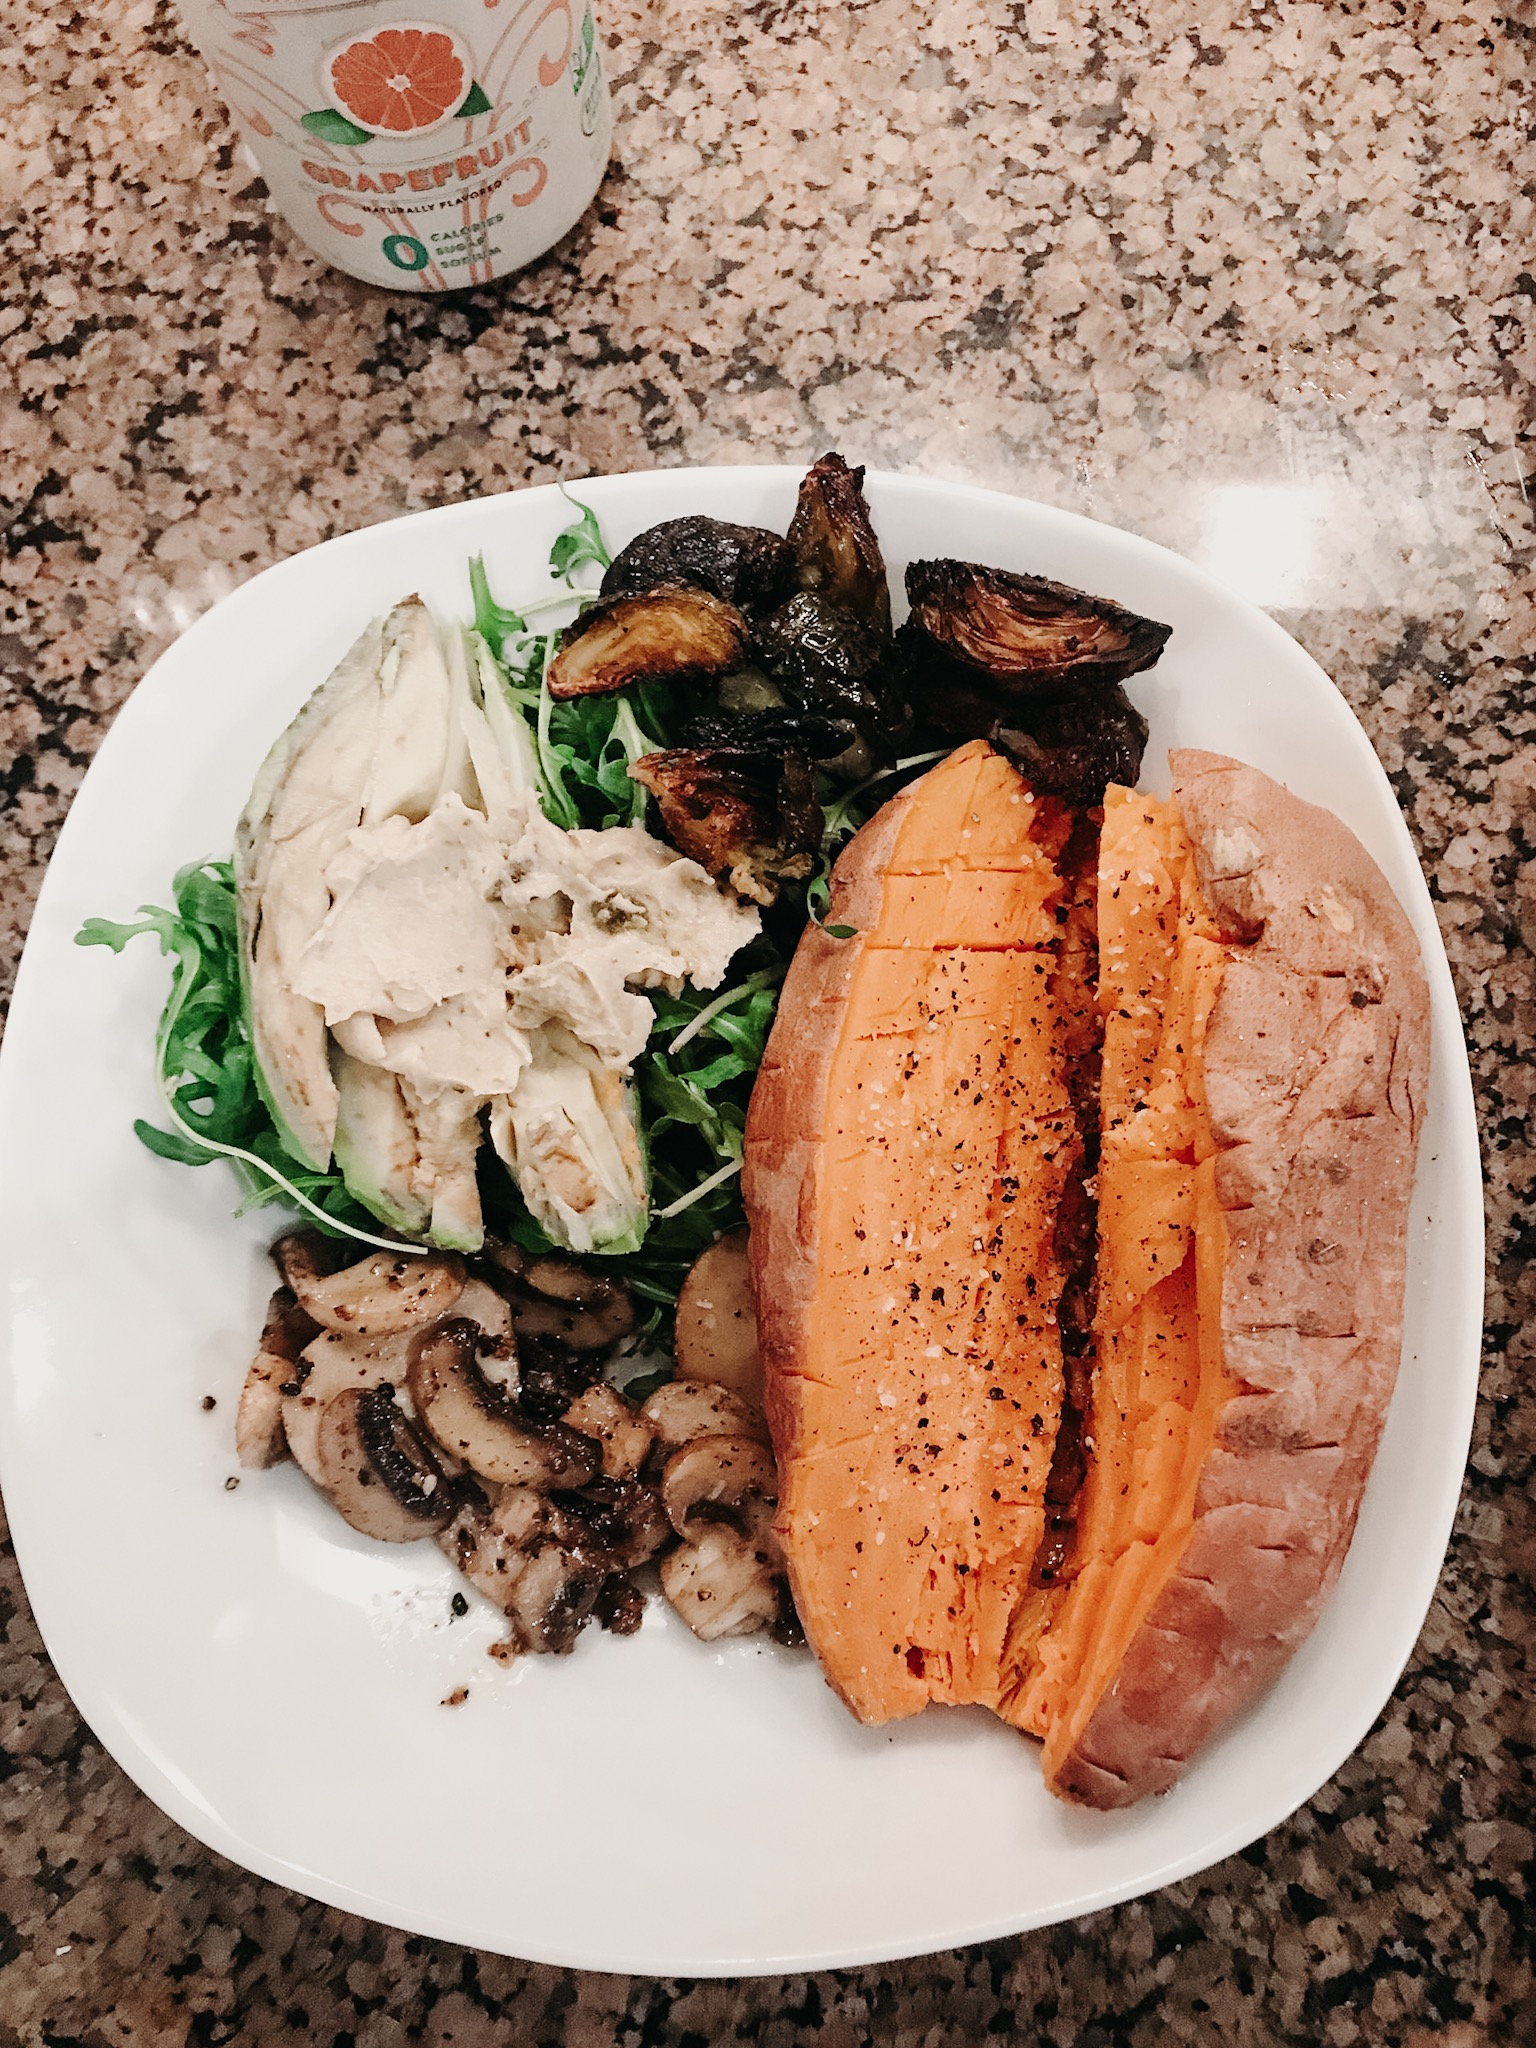 the hippie veggie bowl - + baked sweet potato with salt and pepper+ arugula + avocado+ mushrooms+ brussel sprouts+ hummus